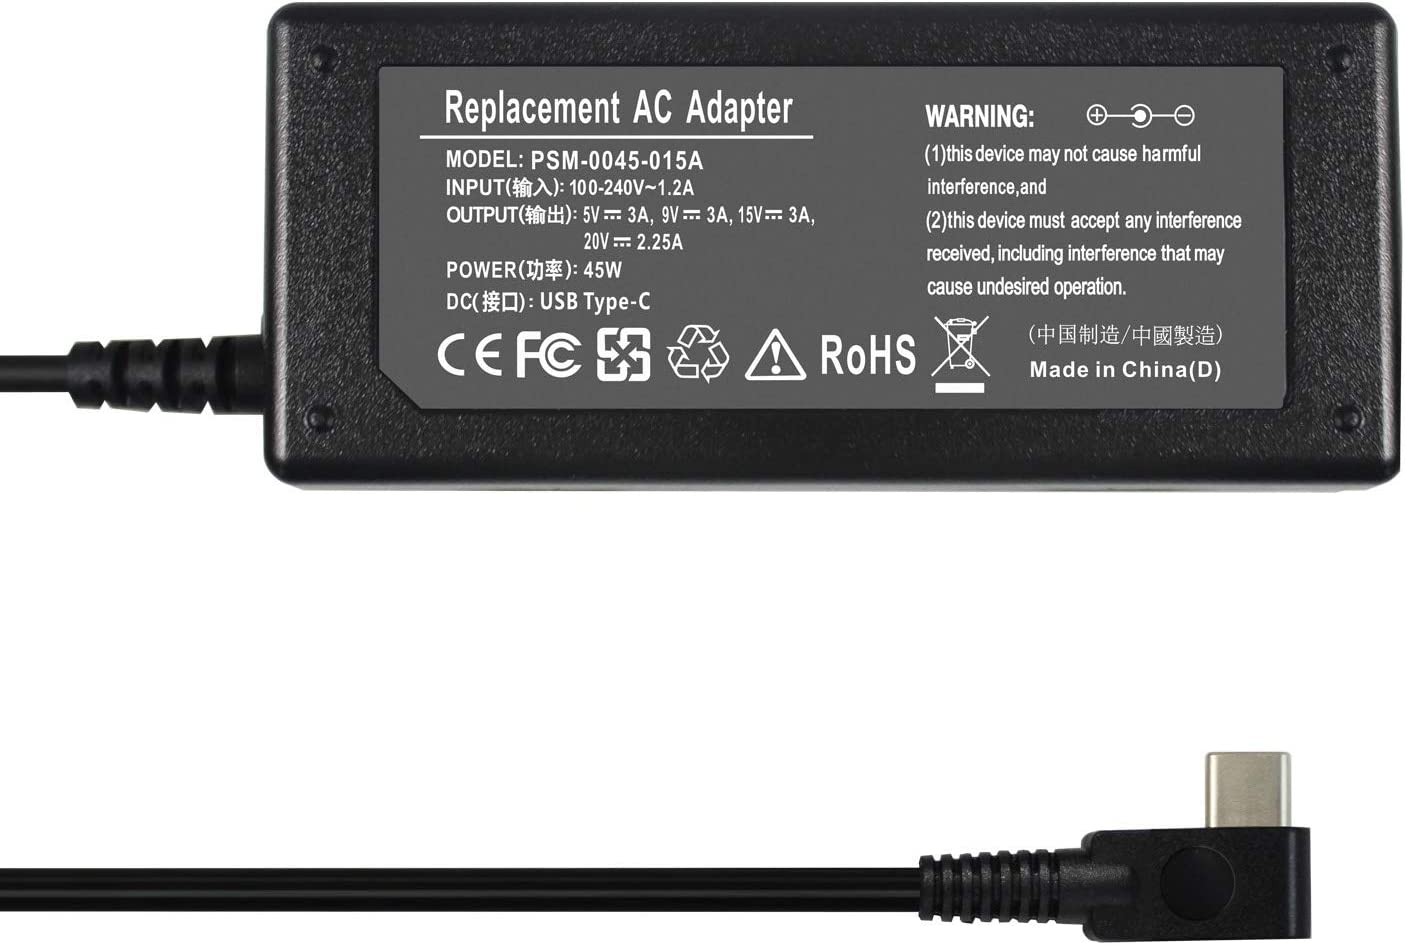 EBOYEE 45W USB-C Charger Power Adapter Replacement for Acer Chromebook R13 11 11A G6 EE Convertible CB5-312T N16Q12 N17Q5 N18Q1 N15Q13 PA-1450-78 PA-1450-80 A16-045N1A ADP-45PE B Chromebook 315